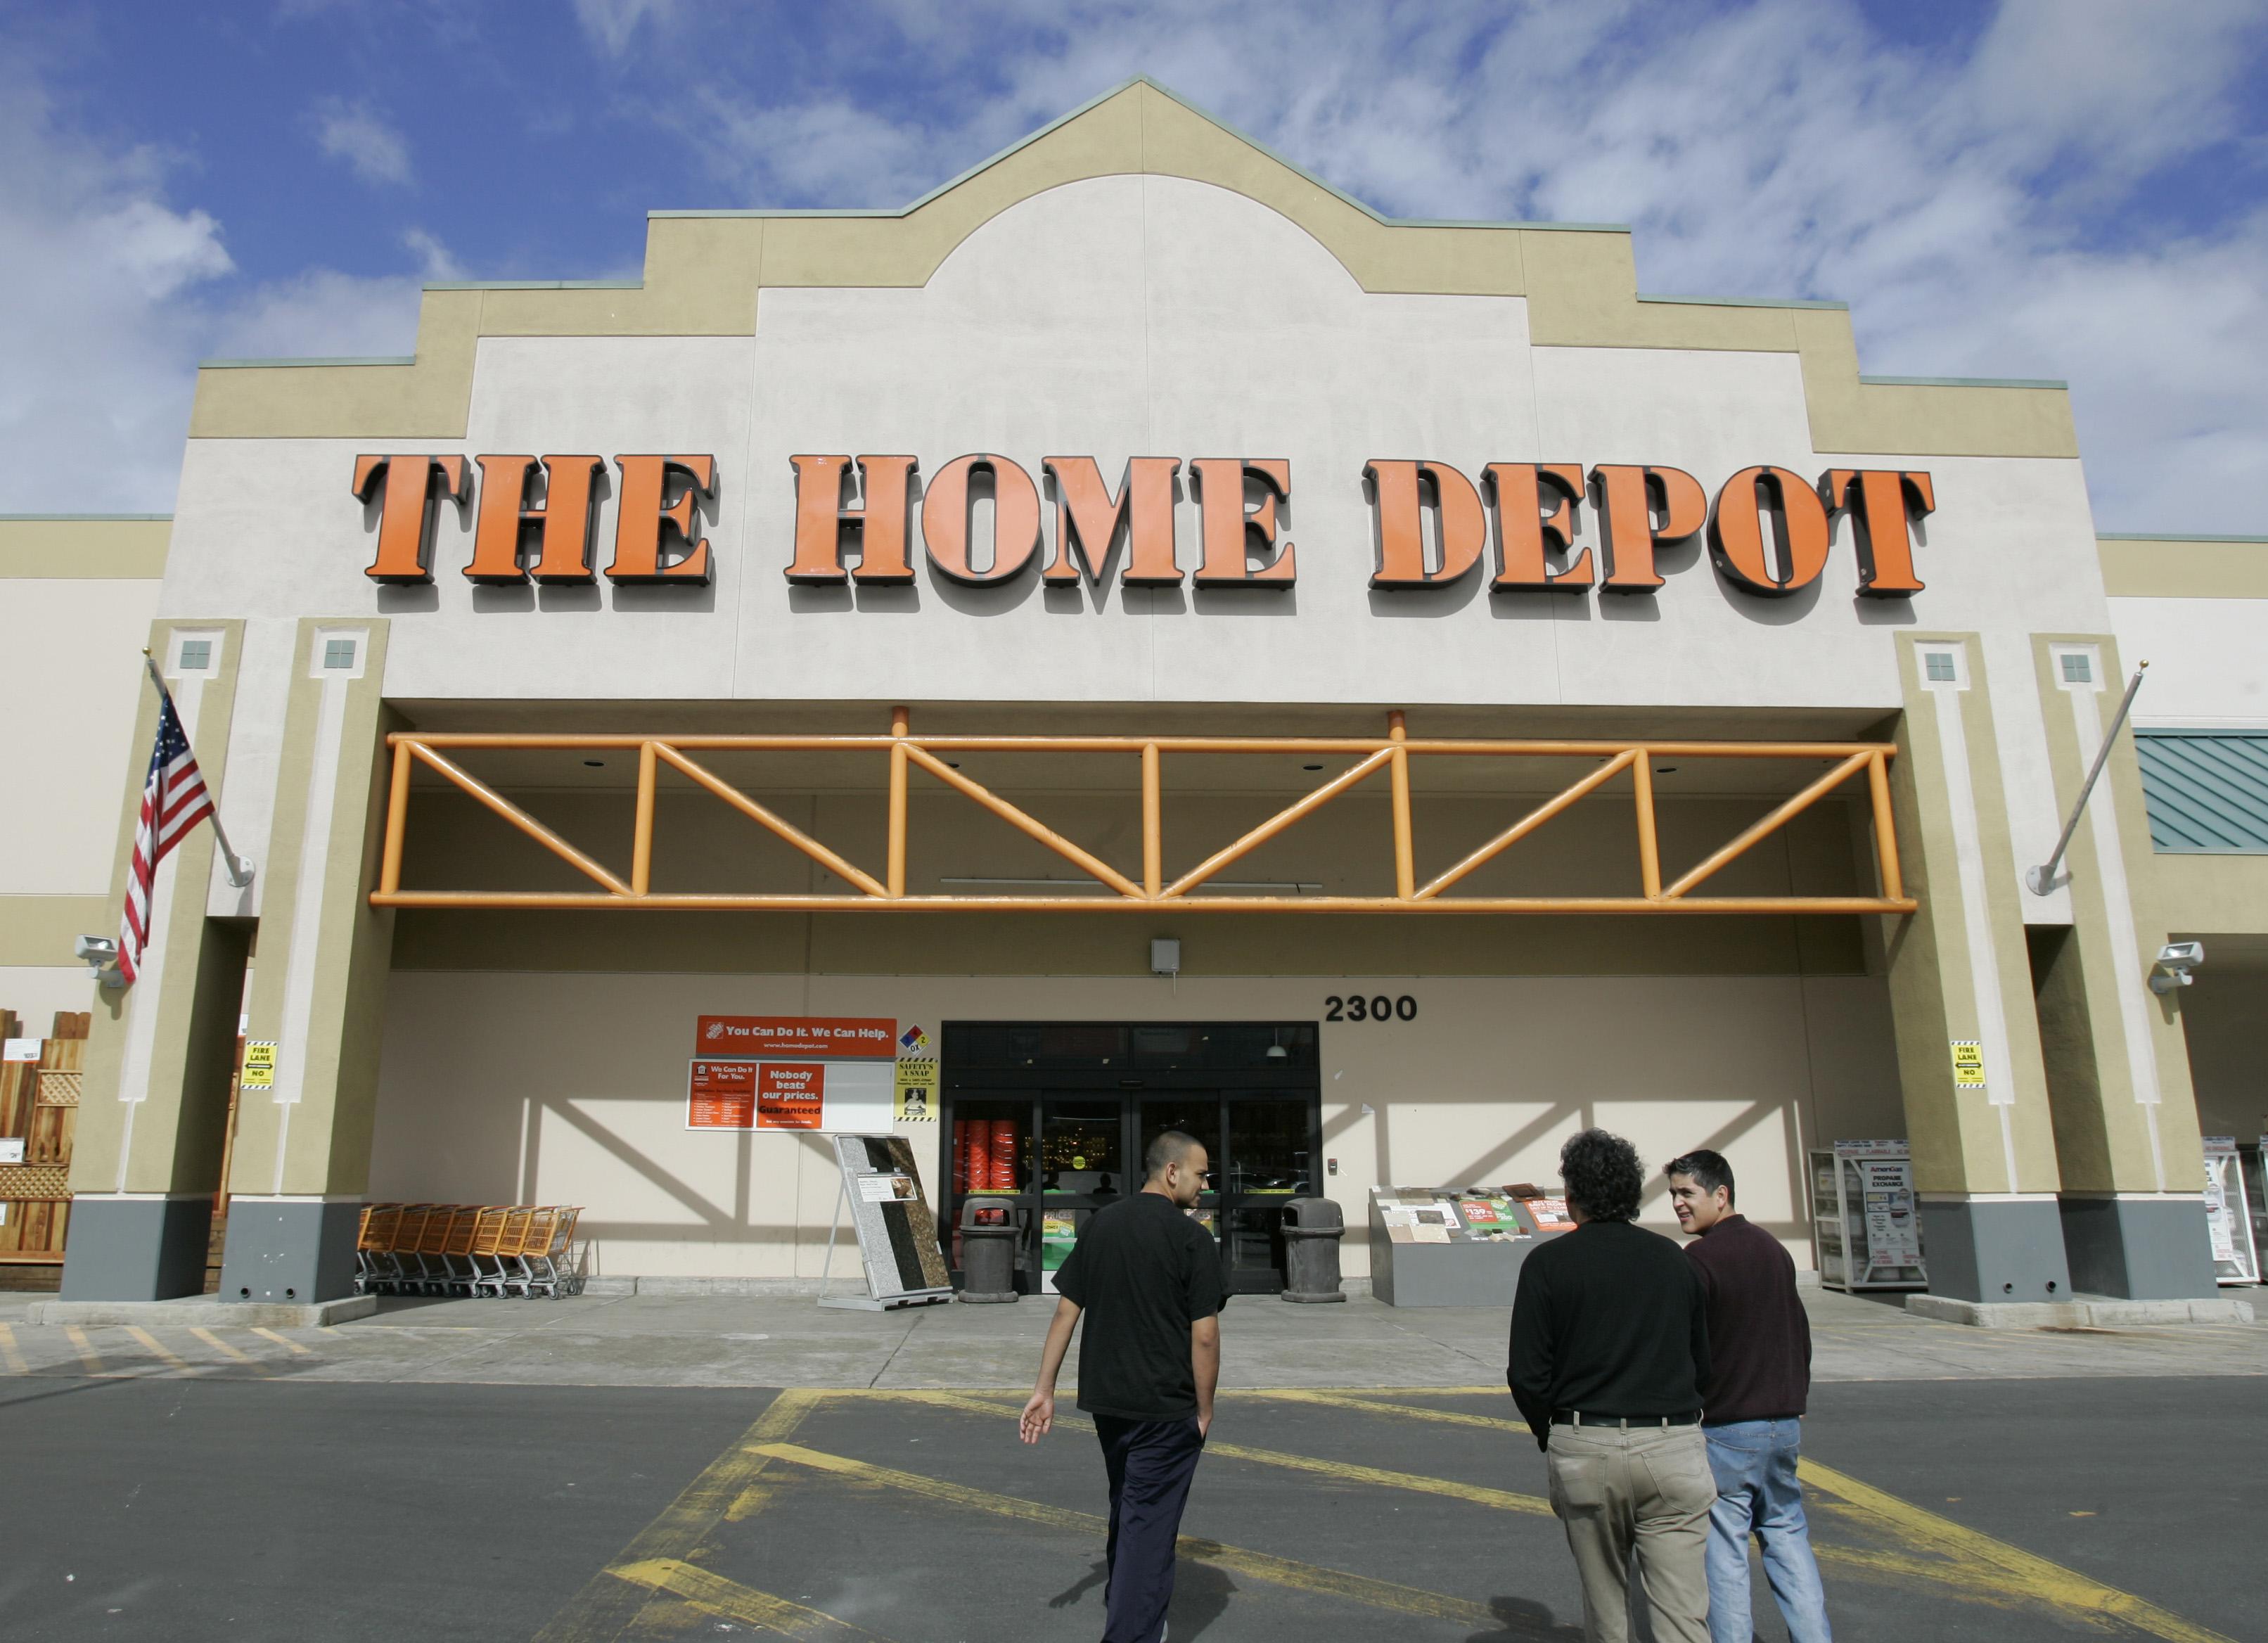 The front entry exterior of The Home Depot, a chain building .